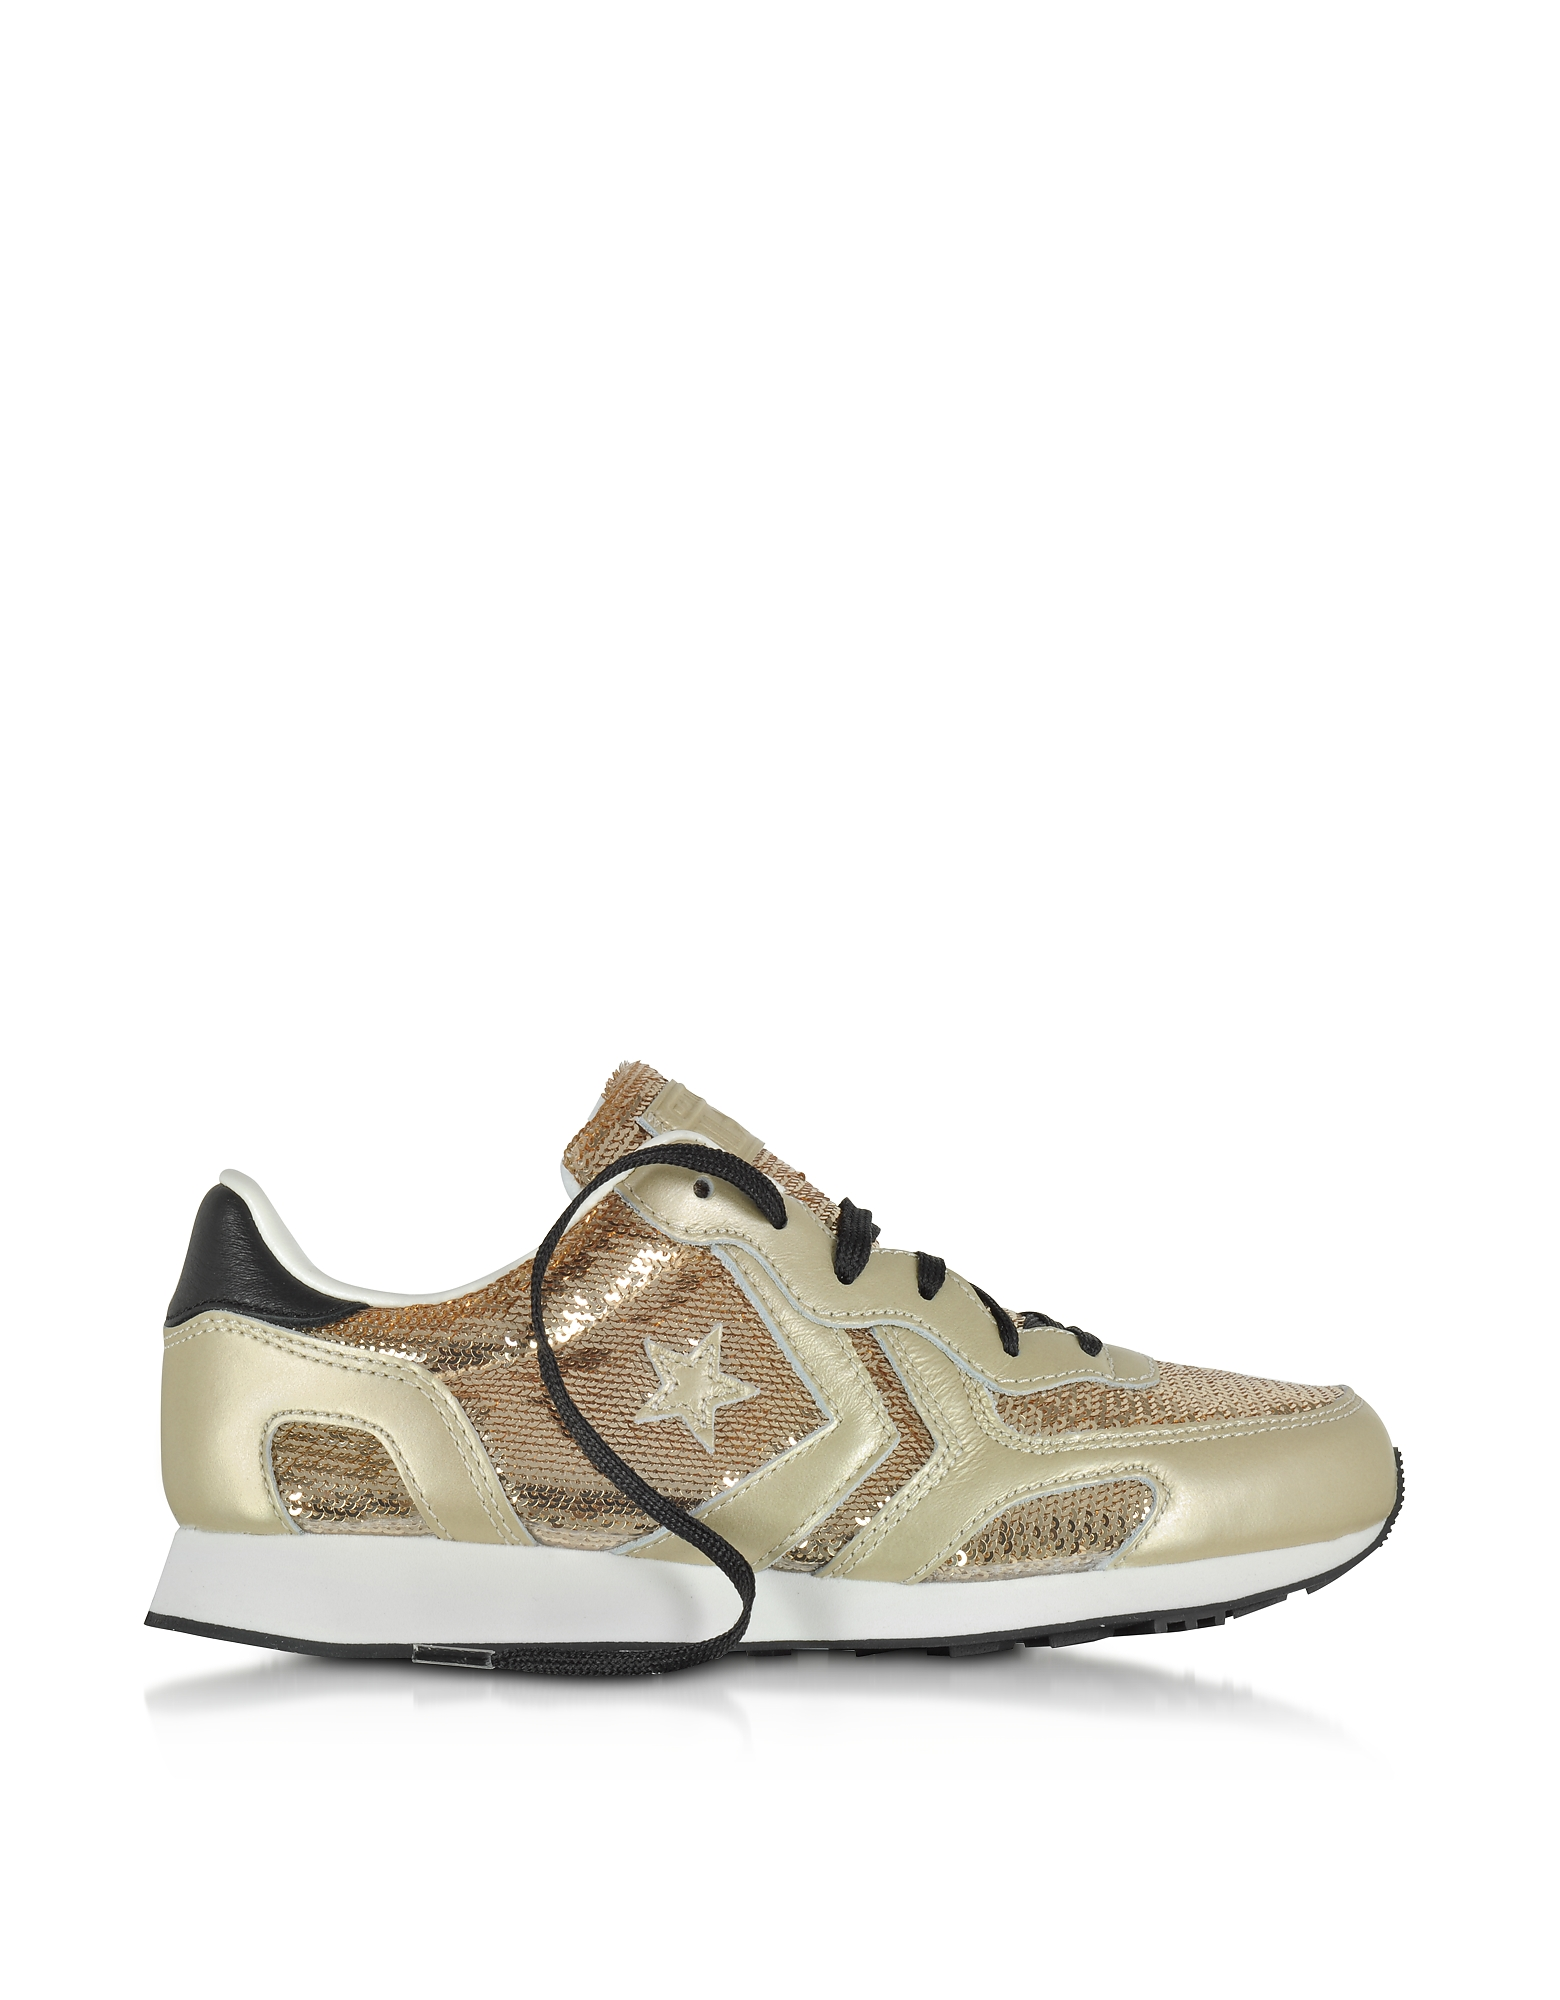 Converse Limited Edition Shoes, Auckland Racer Ox Light Gold Leather Sneakers w/Sequins